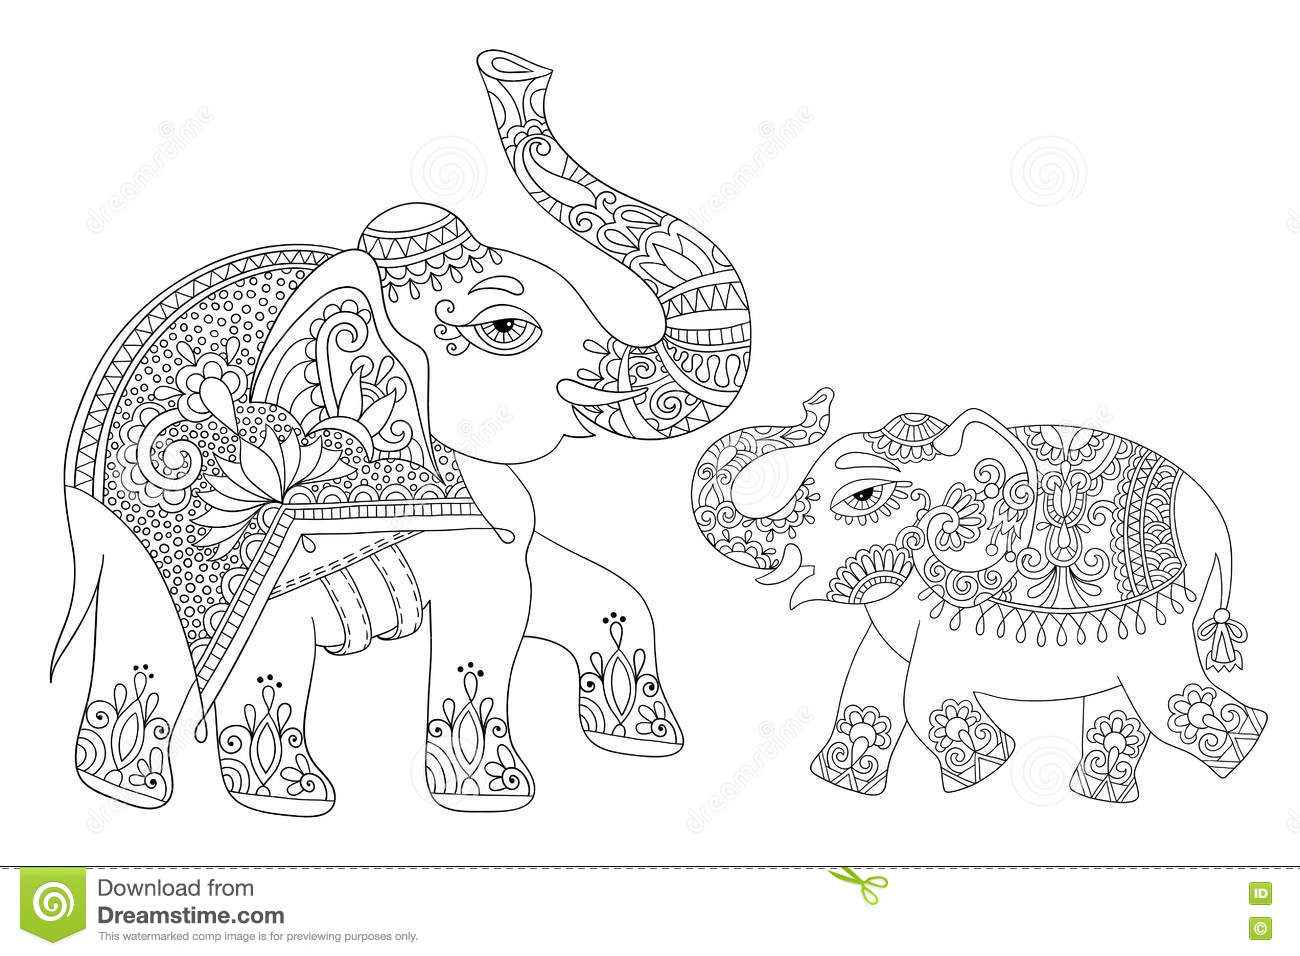 ethnic coloring pages | Ethnic Indian Elephant Line Original Drawing, Adults ...